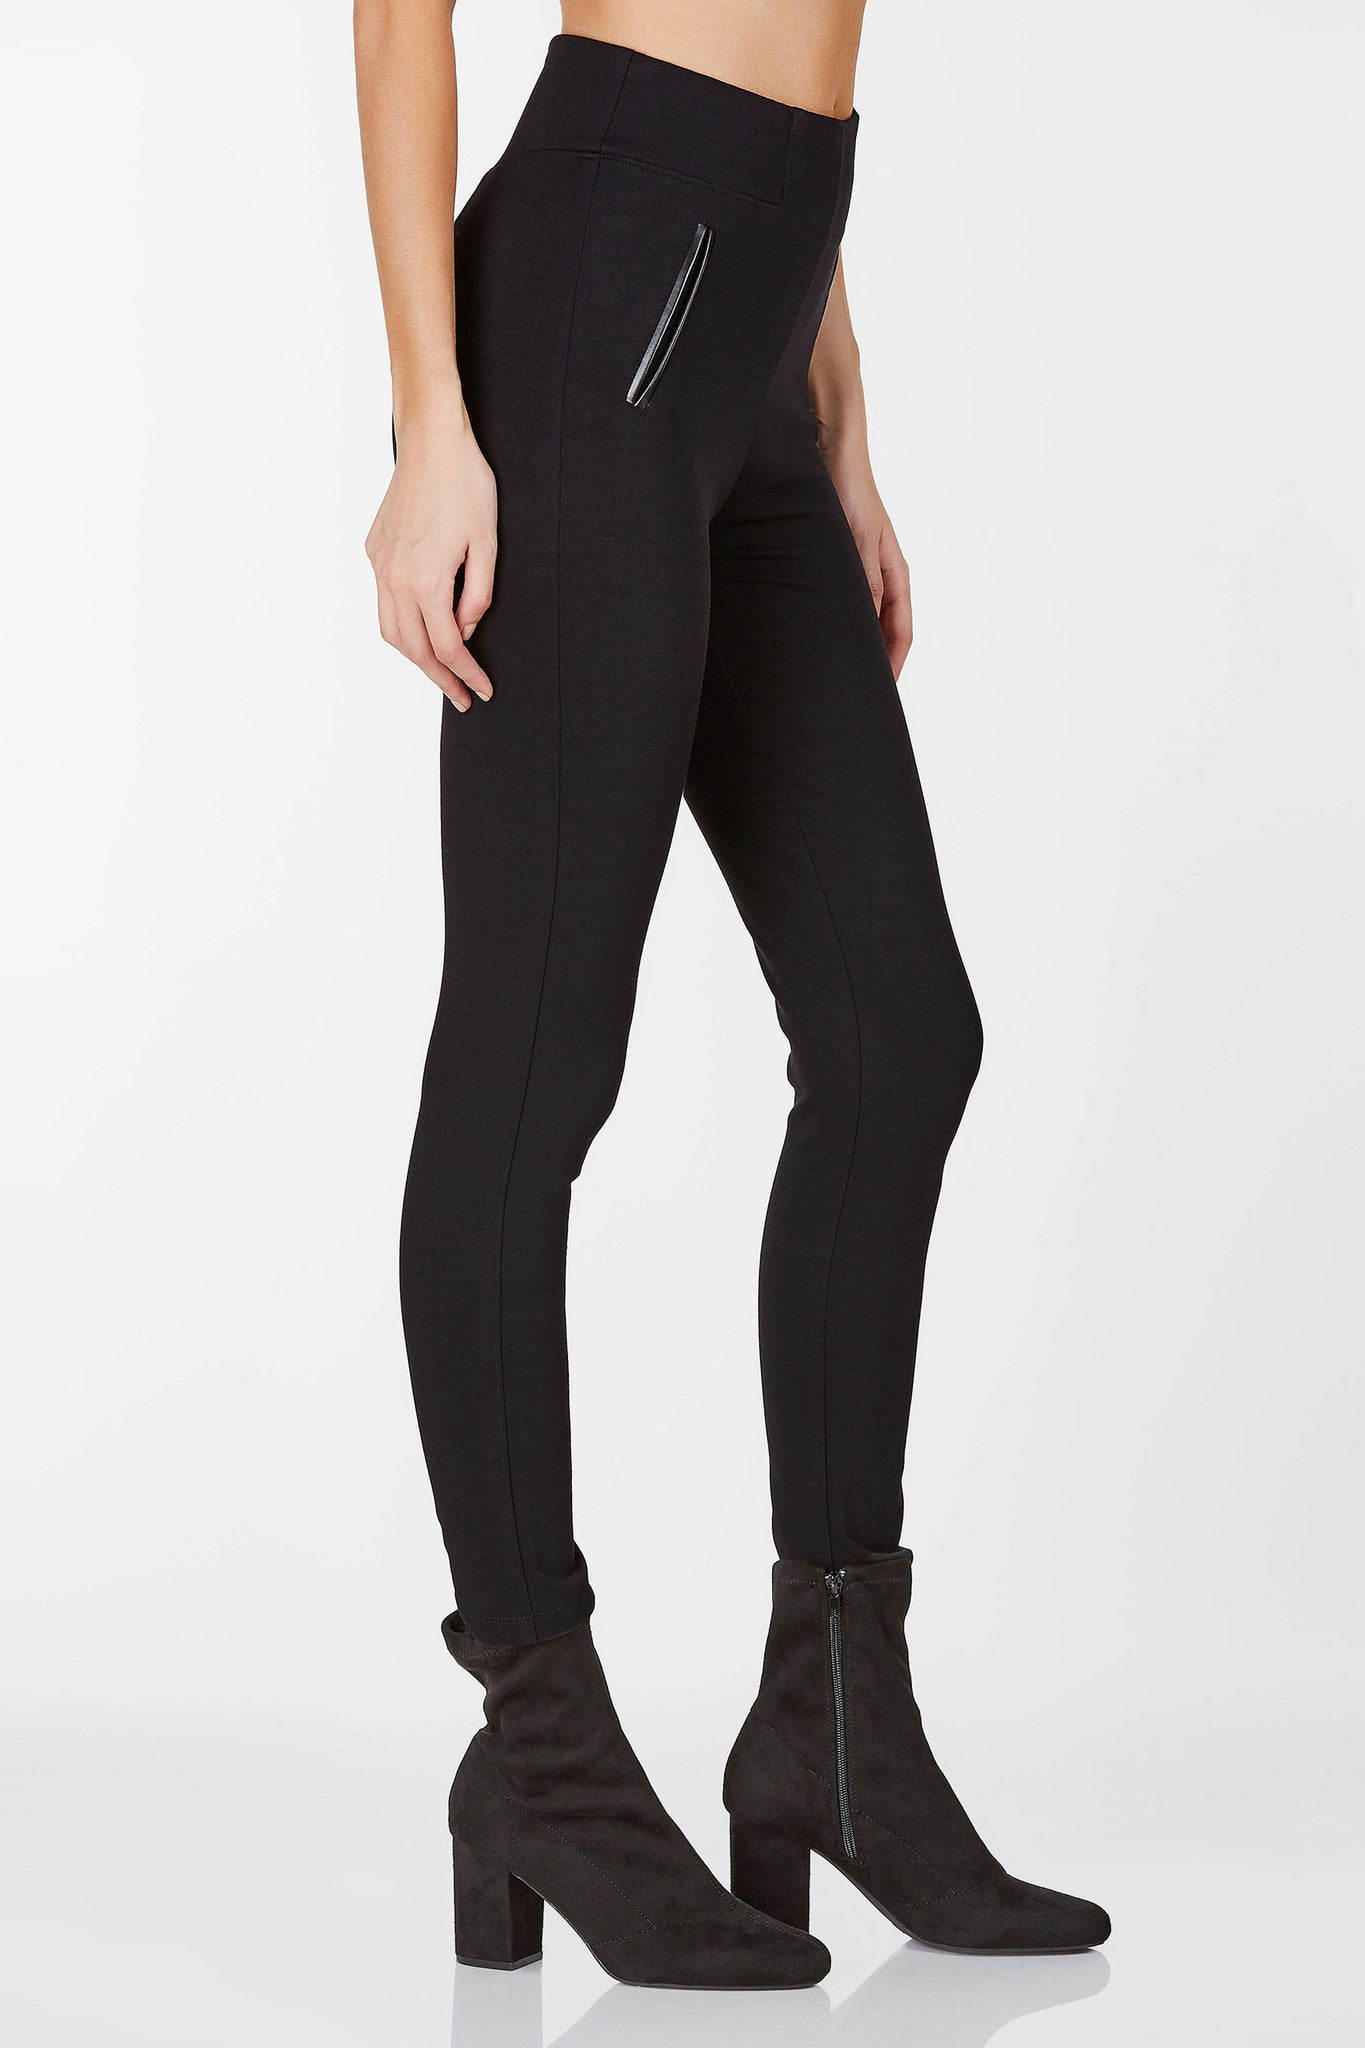 High waisted pants with back zip closure. Contrast faux leather detailing in front with stretchy fit.